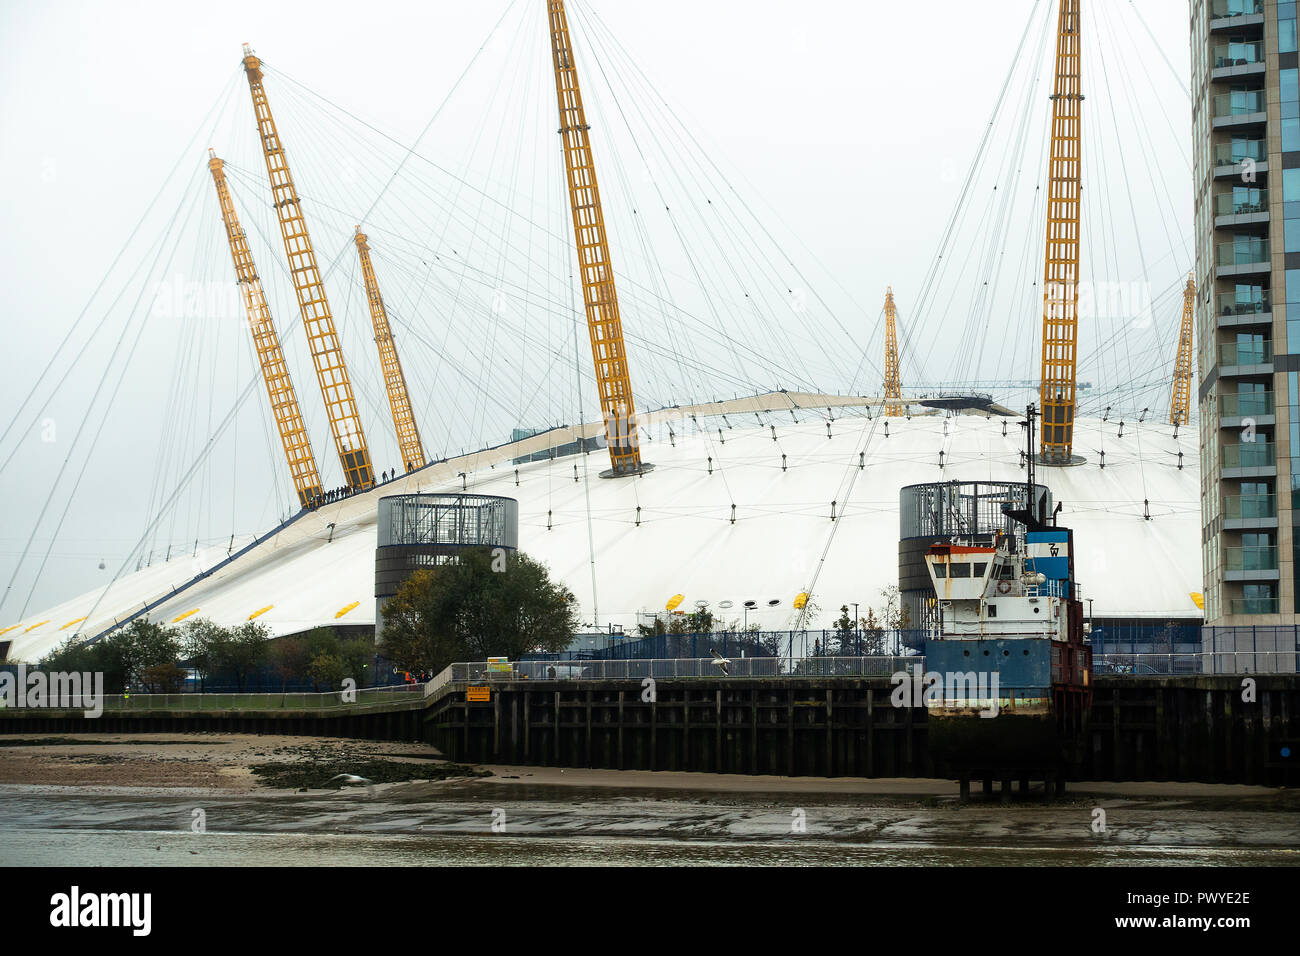 The Millennium Dome now known as The O2 Arena on the Bank of the River Thames on the Greenwich Peninsula South East London United Kingdom UK - Stock Image